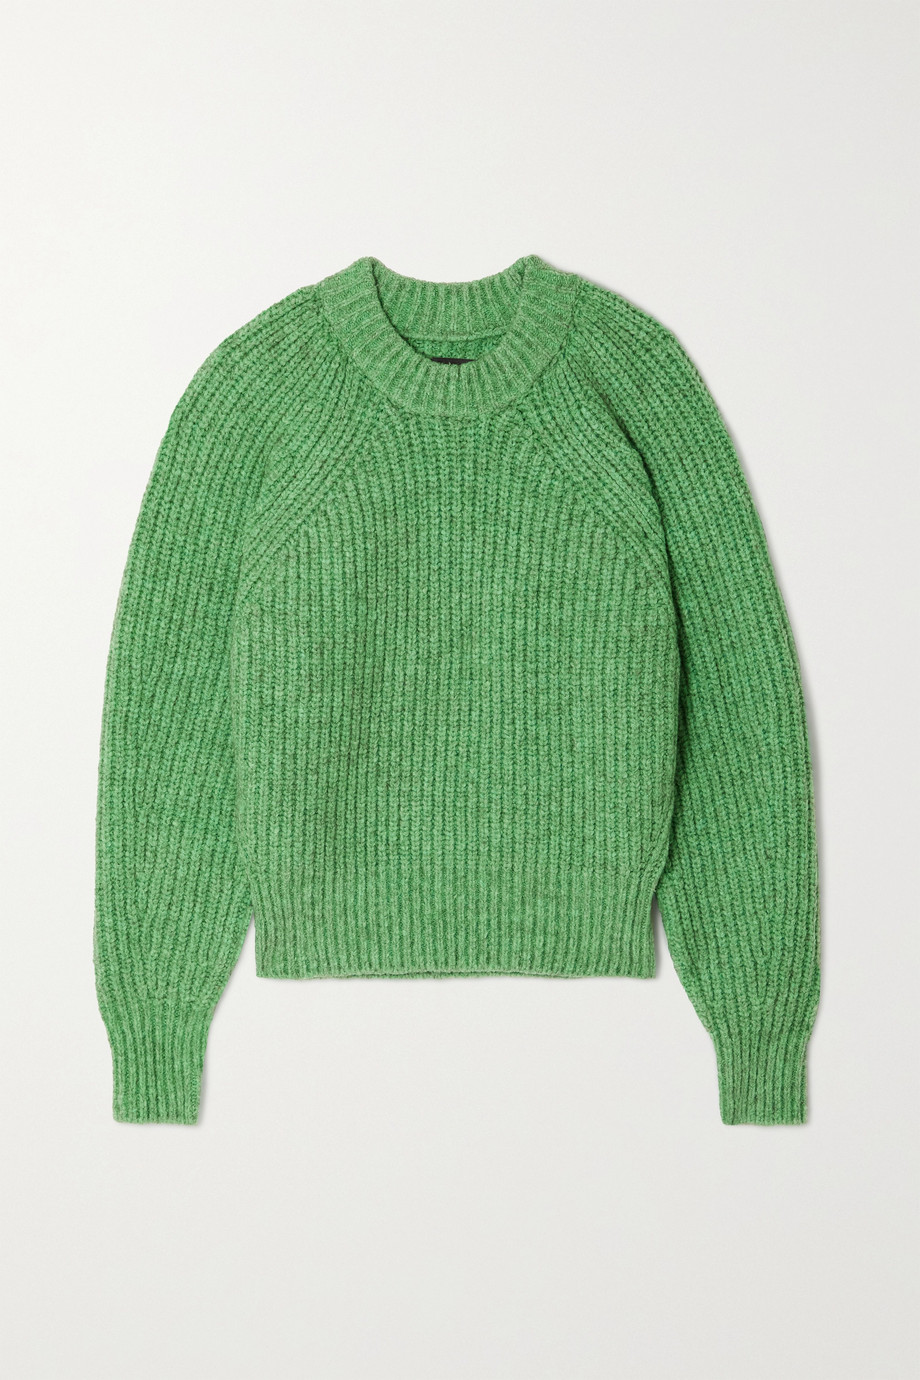 Isabel Marant Rosy ribbed cotton-blend sweater